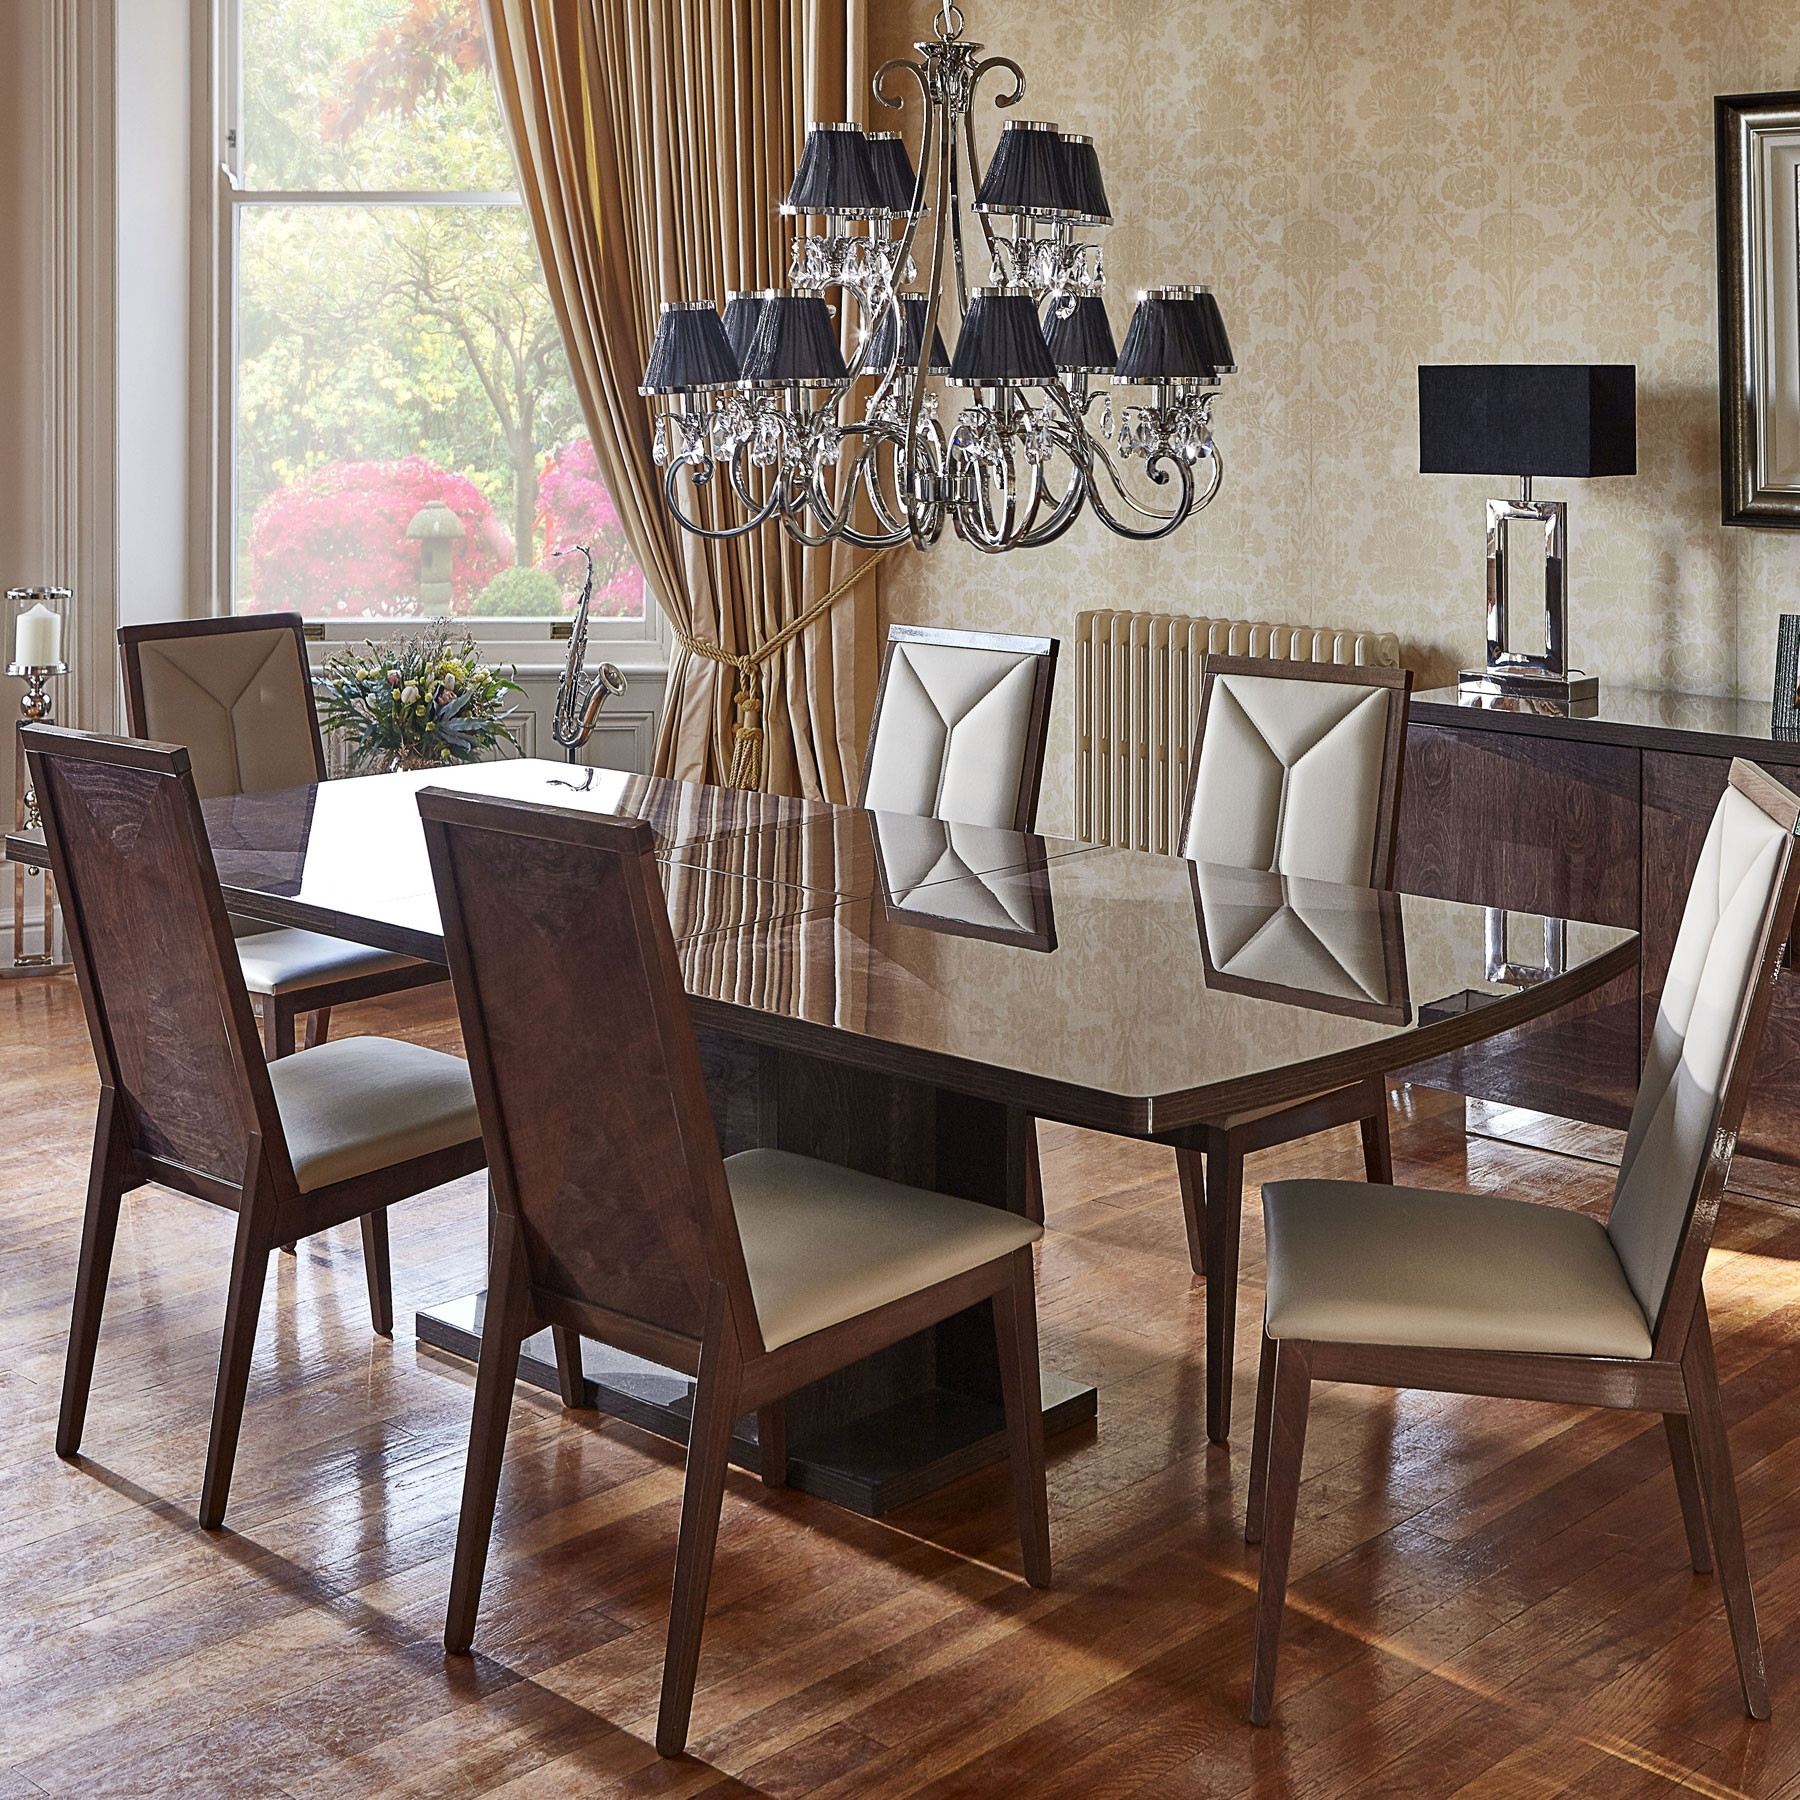 Most Recent Vogue High Gloss Extending Dining Table & 6 Chairs Throughout Black Gloss Extending Dining Tables (View 18 of 25)